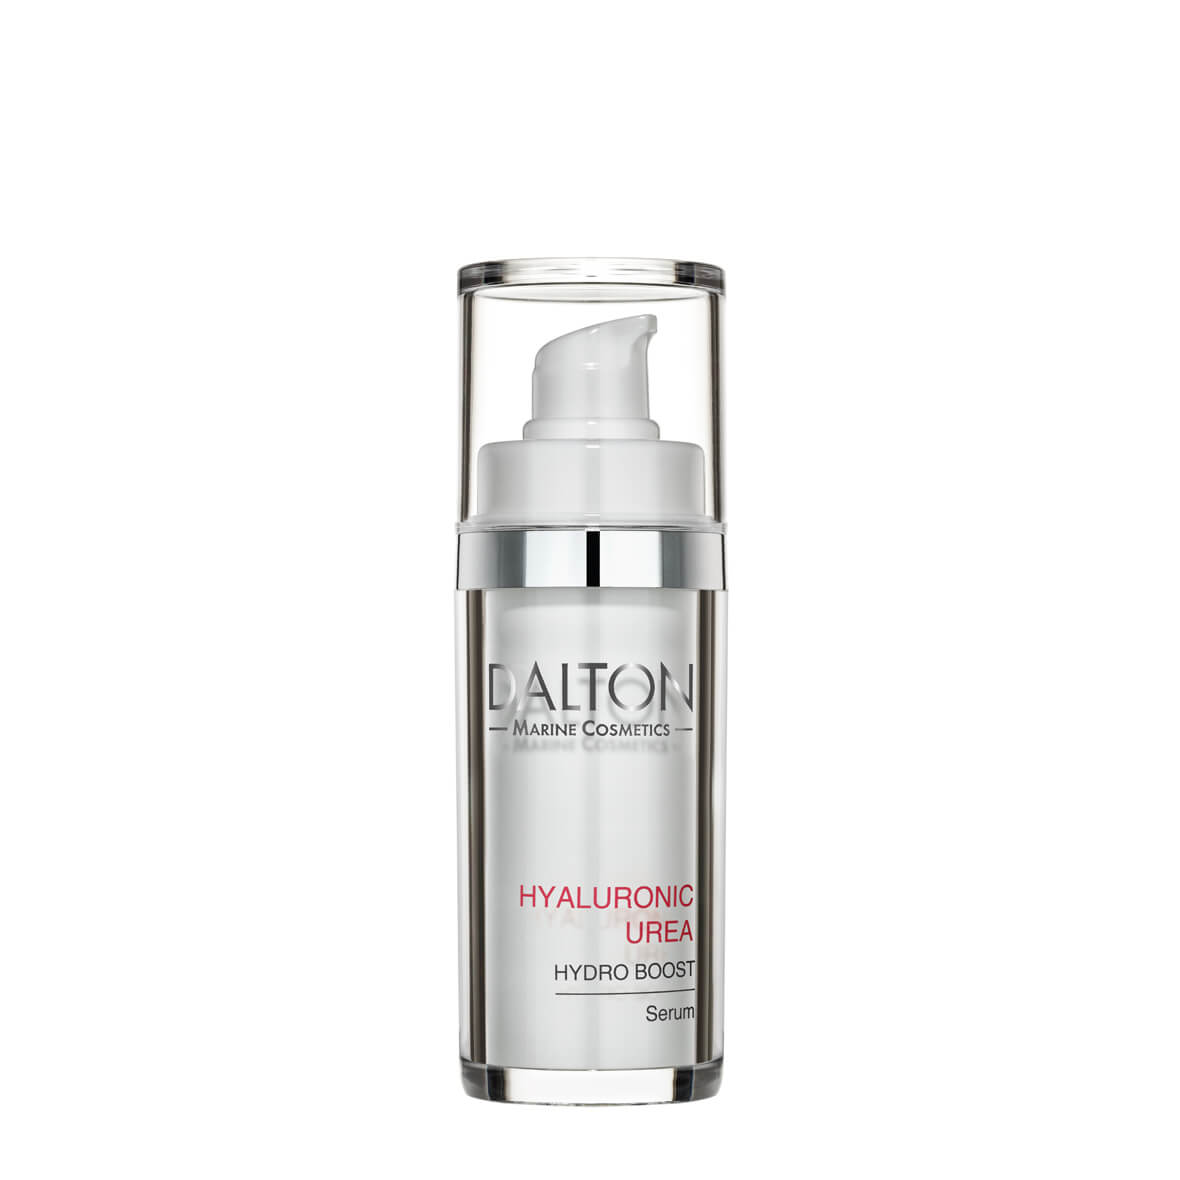 Hyaluronic Urea Serum 30ml, ser, Dalton Marine Cosmetics, Era Cosmetics